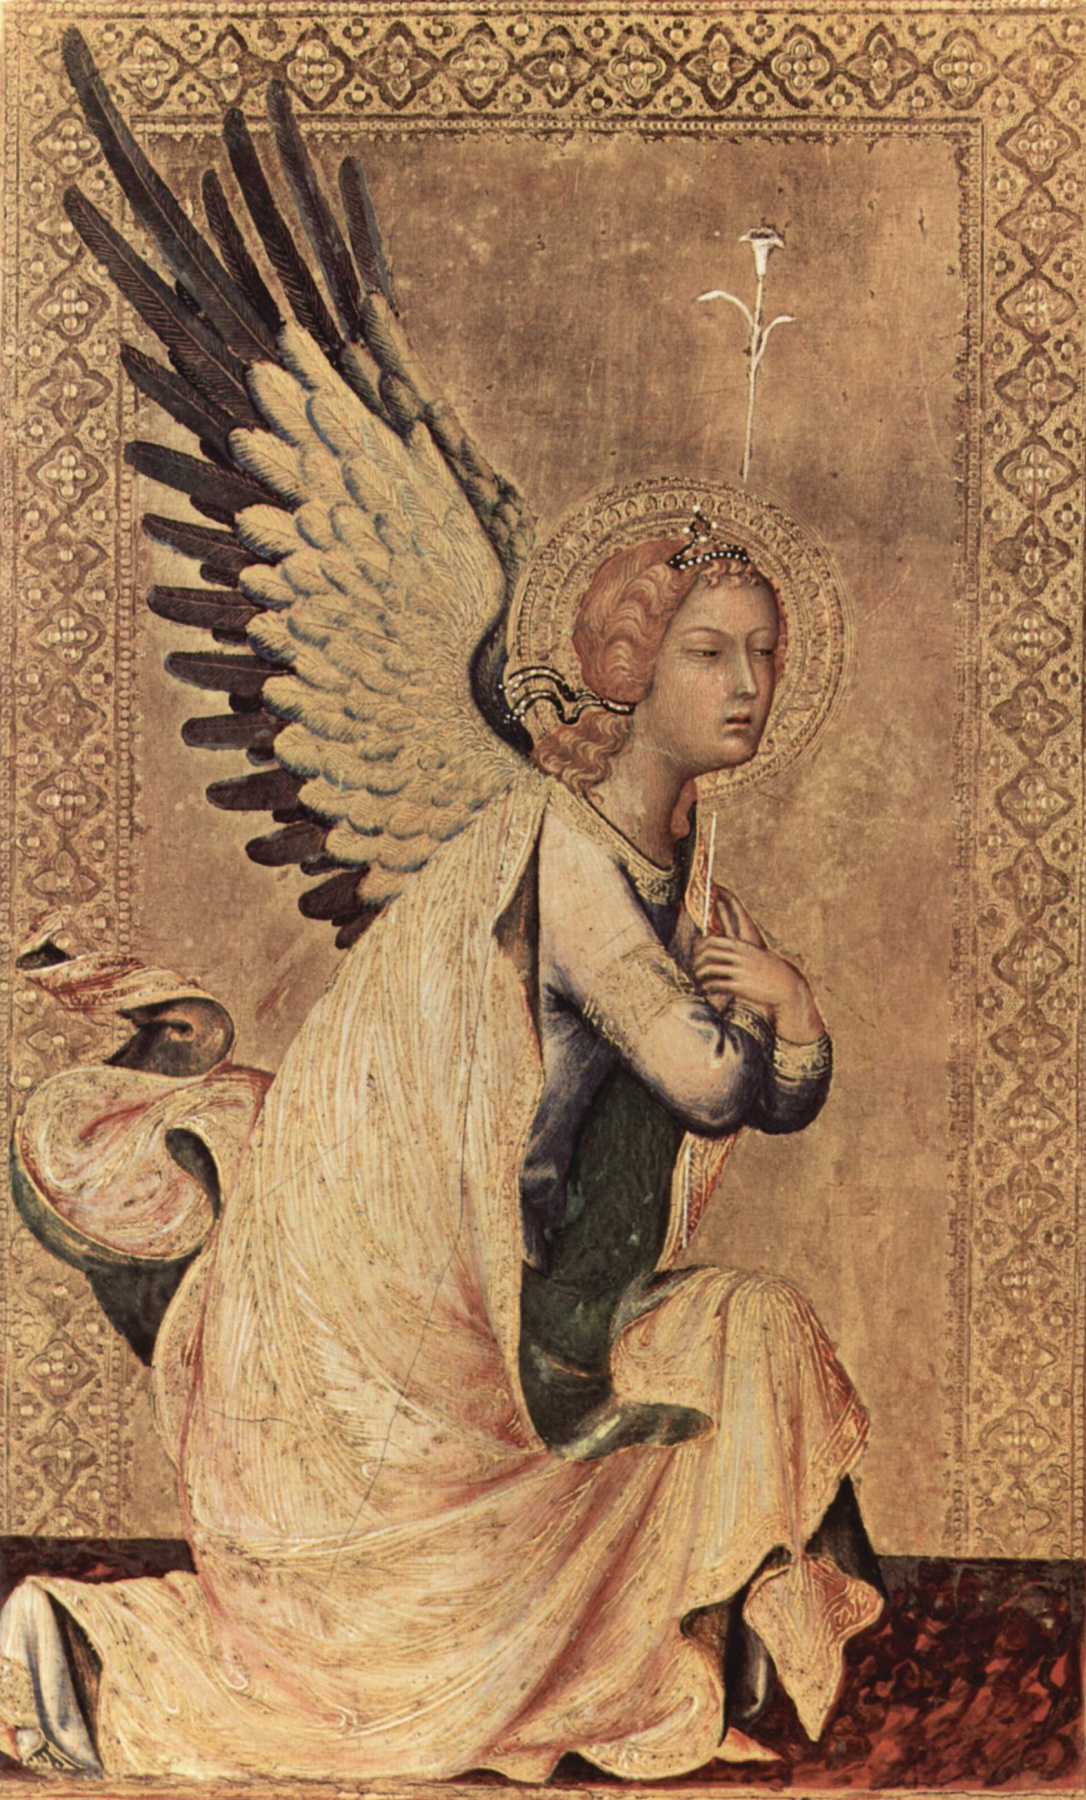 Simone Martini. The Altar Orsini. The angel of the Annunciation